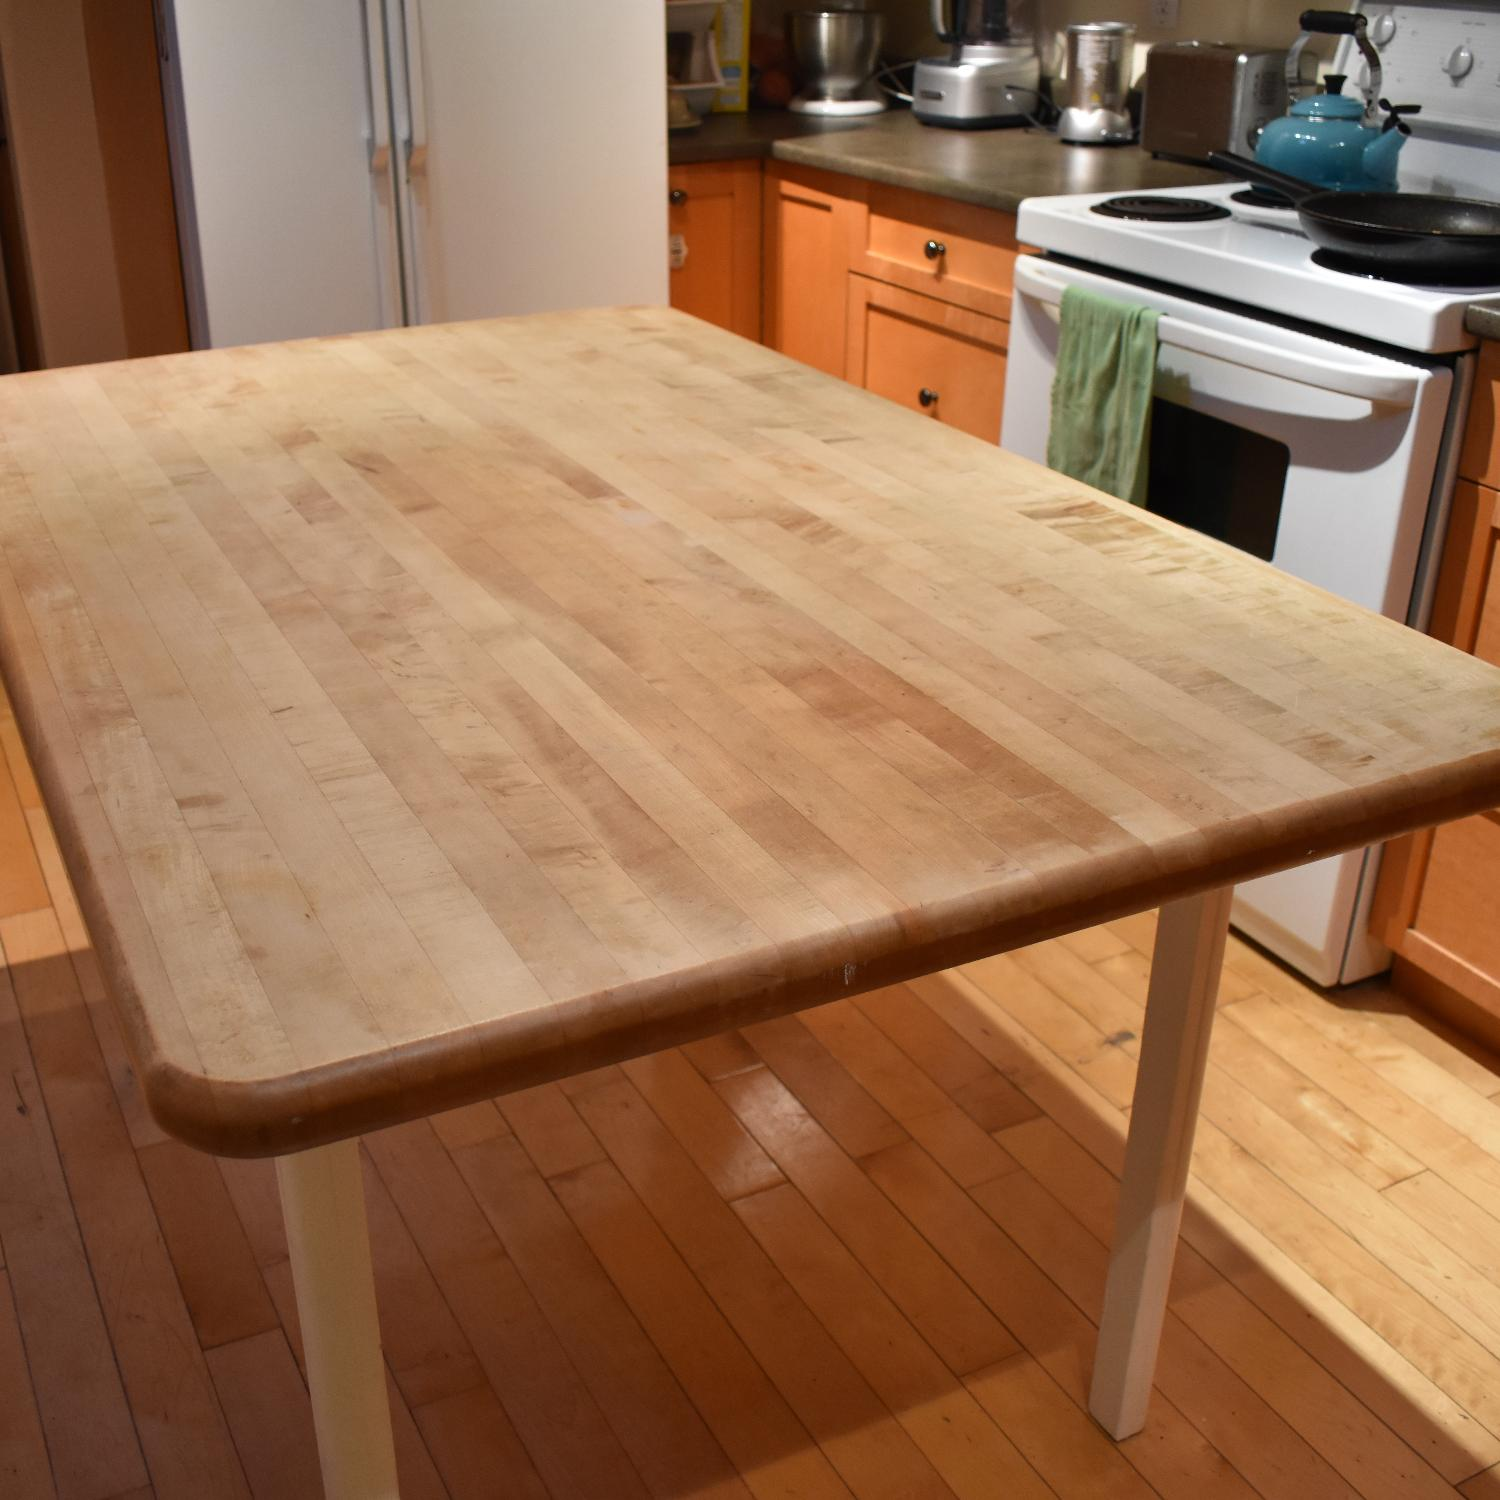 Find More Butcher Block For Sale At Up To 90% Off